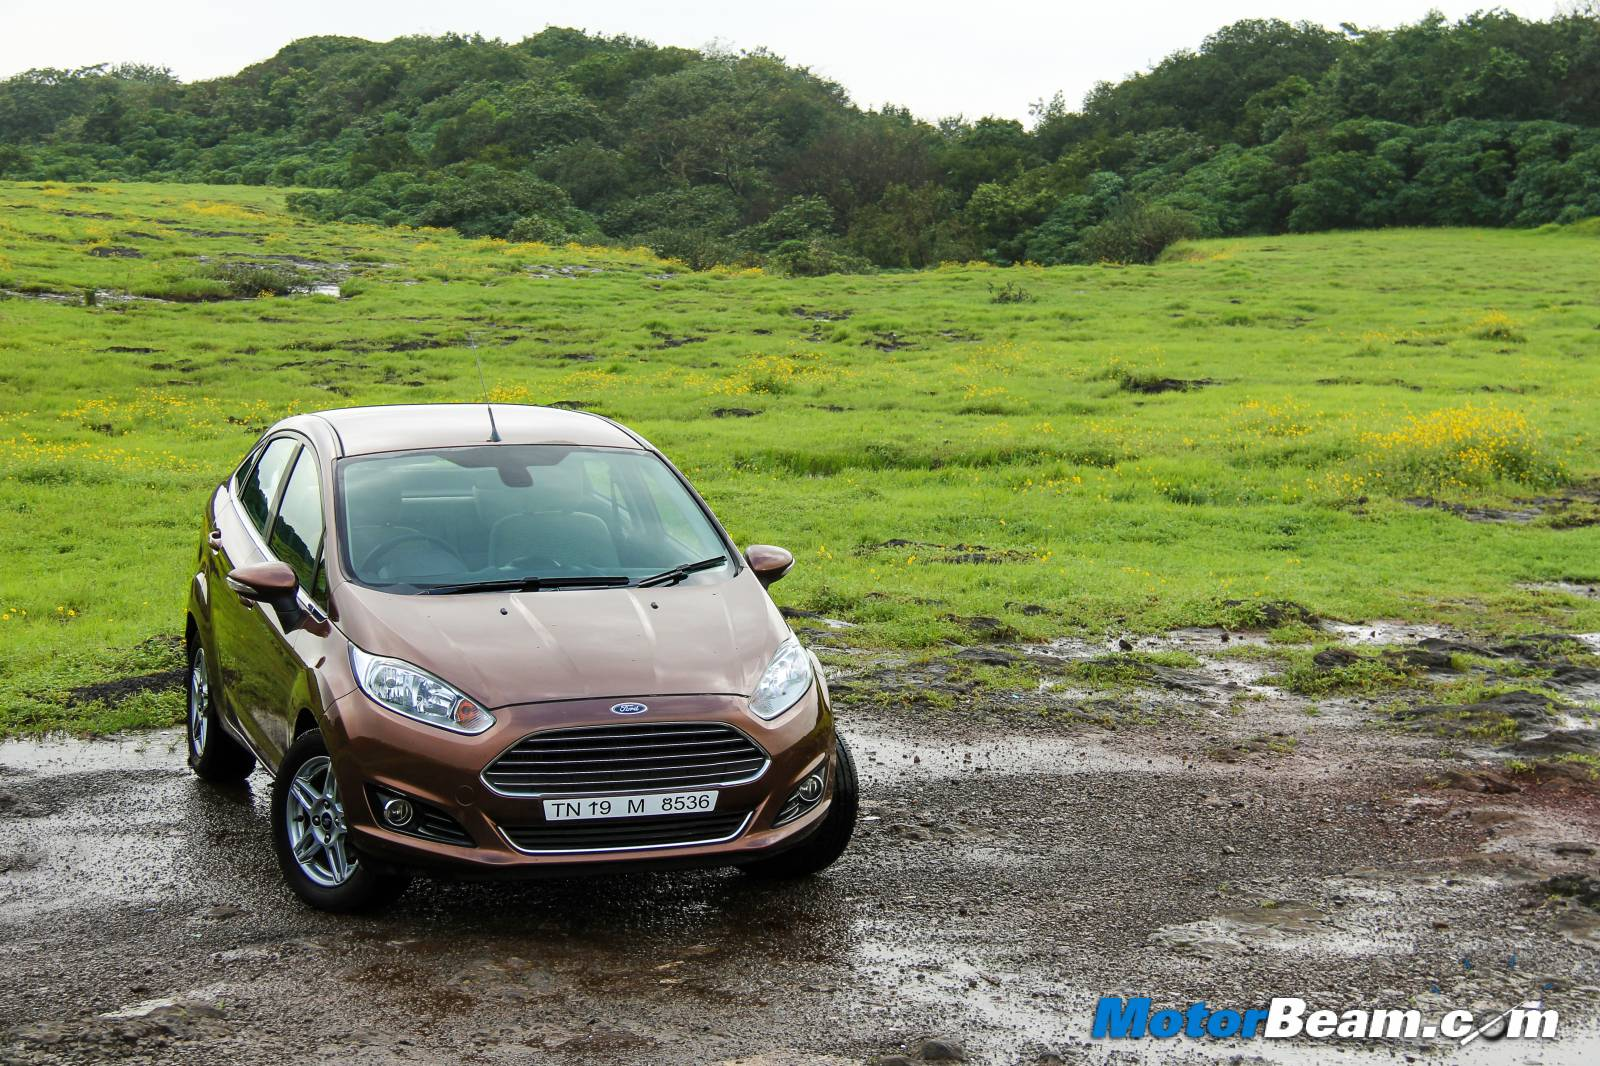 2014 Ford Fiesta Long Term Review